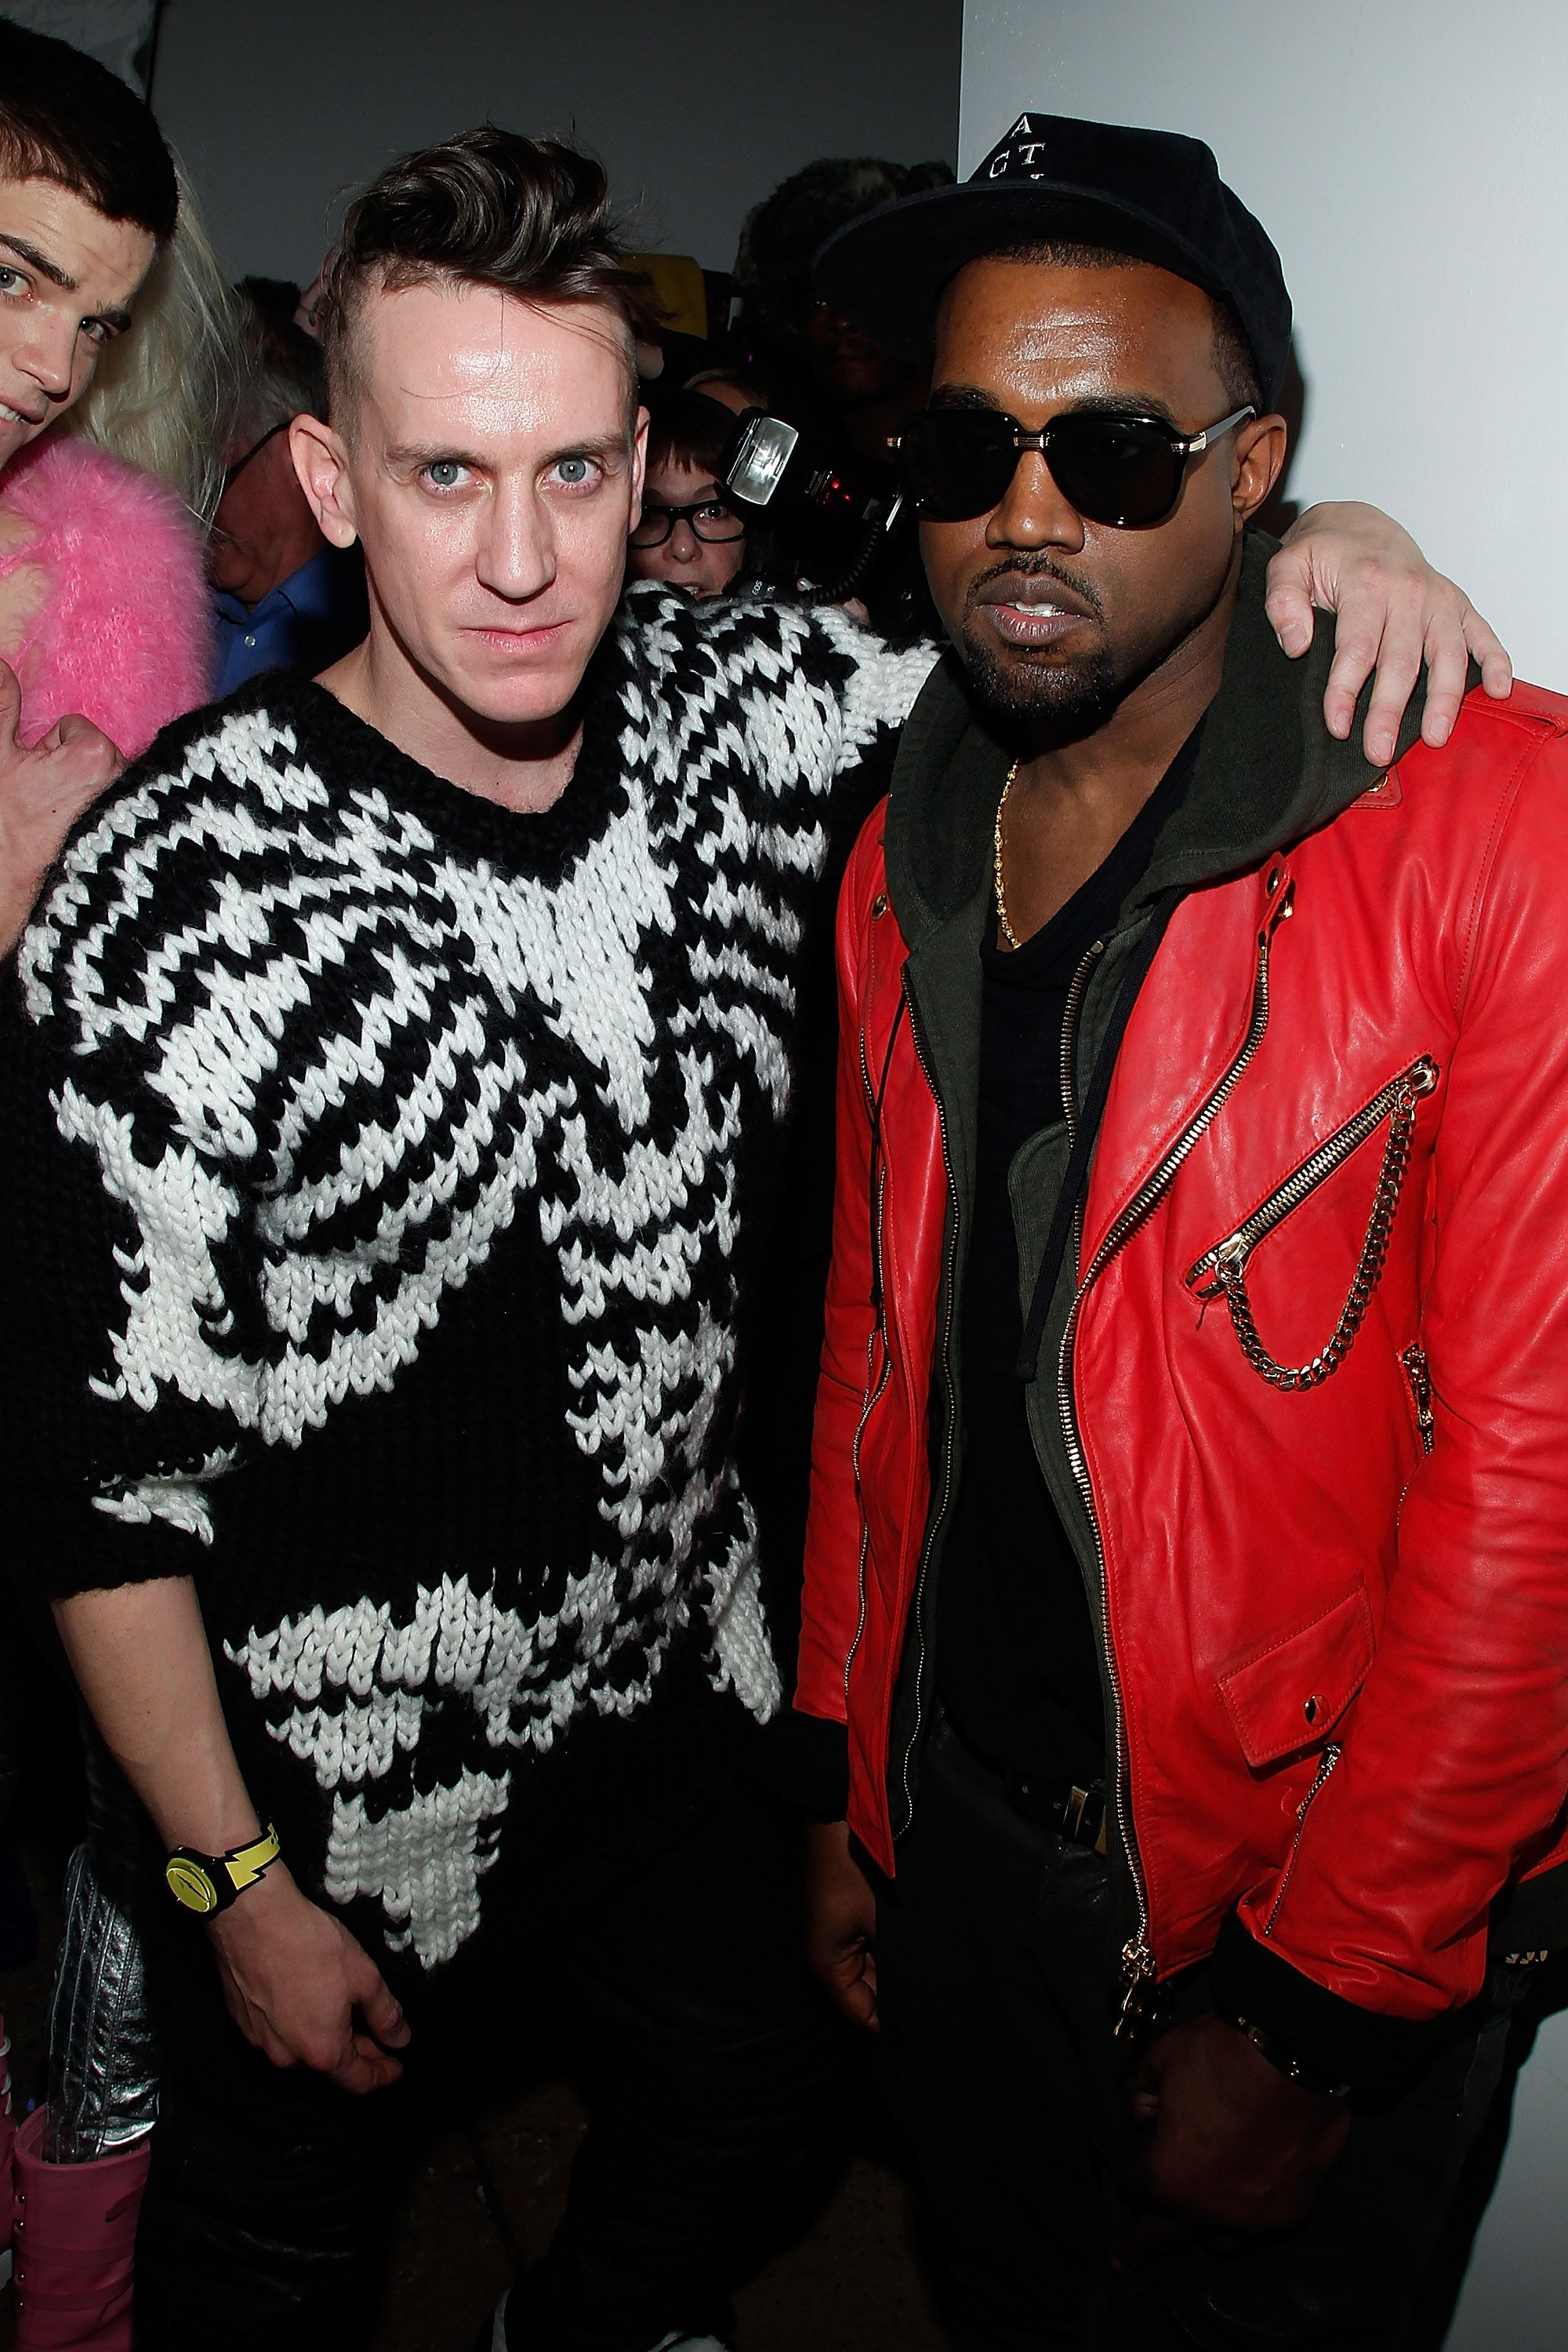 """<p>""""I'm the person who brought [Kanye West] to Adidas,"""" Scott <a href=""""http://www.complex.com/sneakers/2015/09/jeremy-scott-brought-kanye-west-to-adidas"""">said in an interview with <em>Complex</em> Style</a>. No small introduction, given how *that* partnership has panned out, and loyalty counts for something, even in fashion.</p>"""